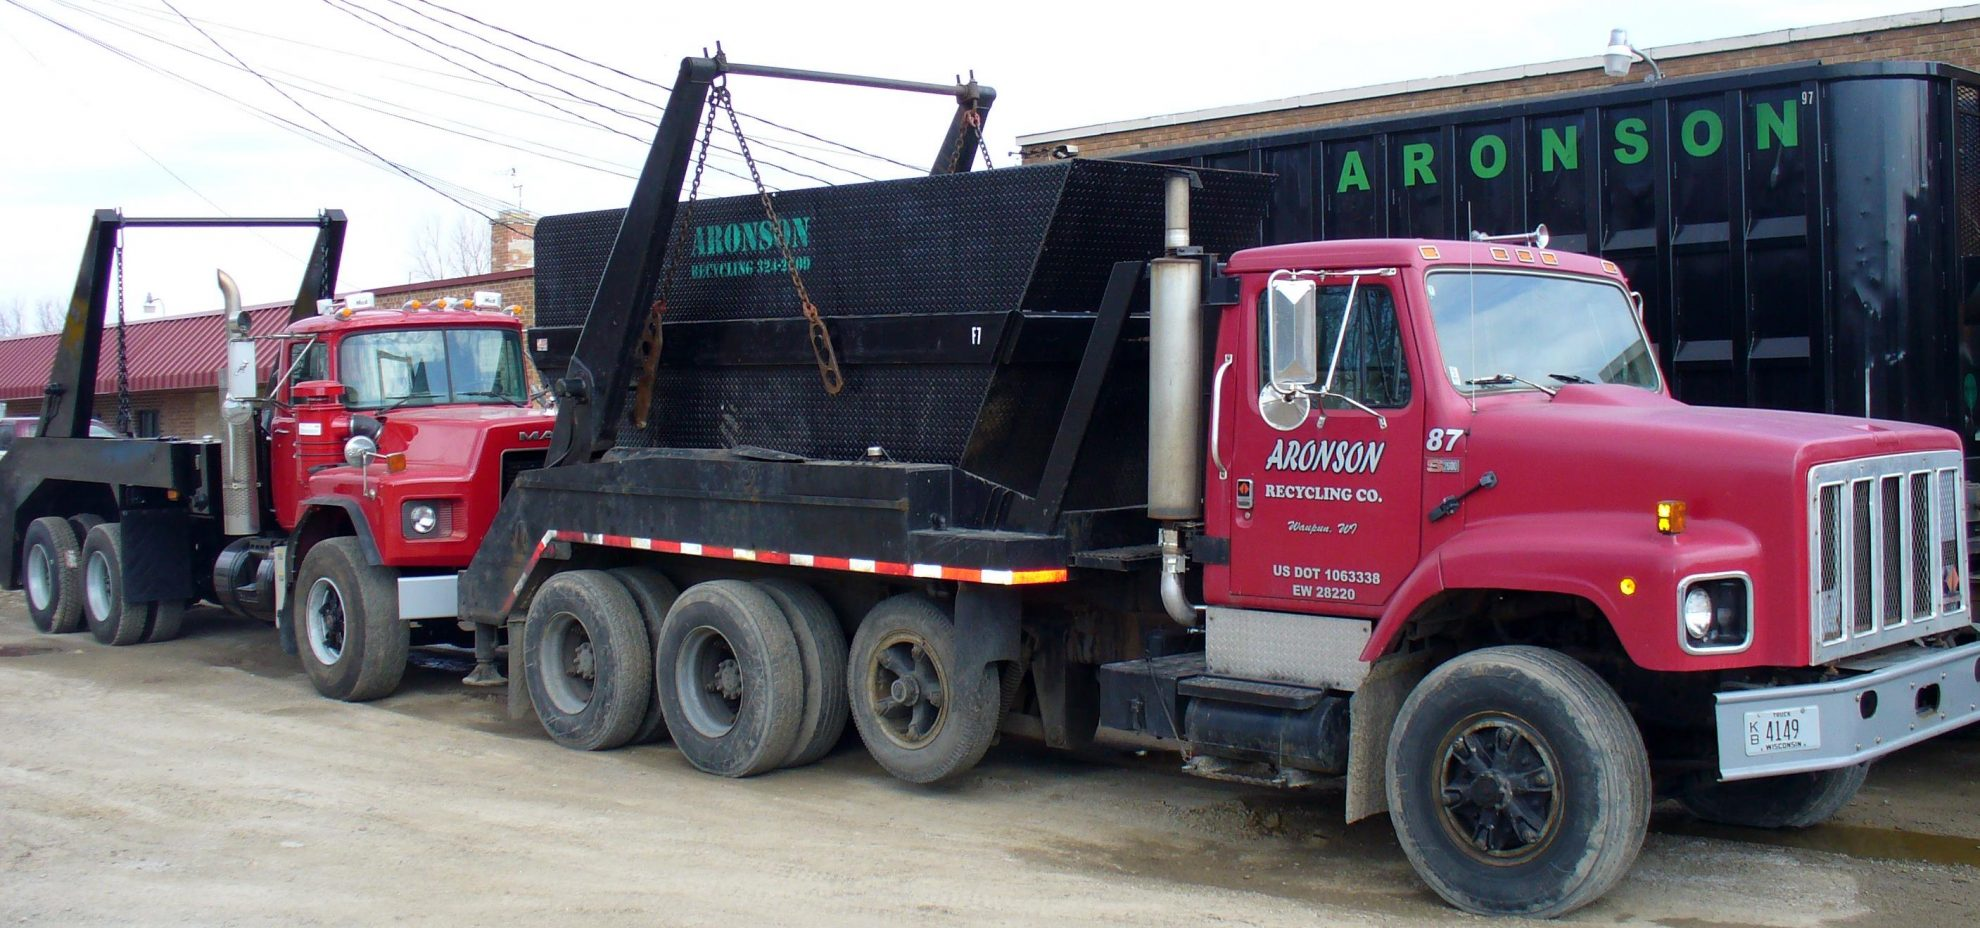 Image of Aronson Recycling trucks.